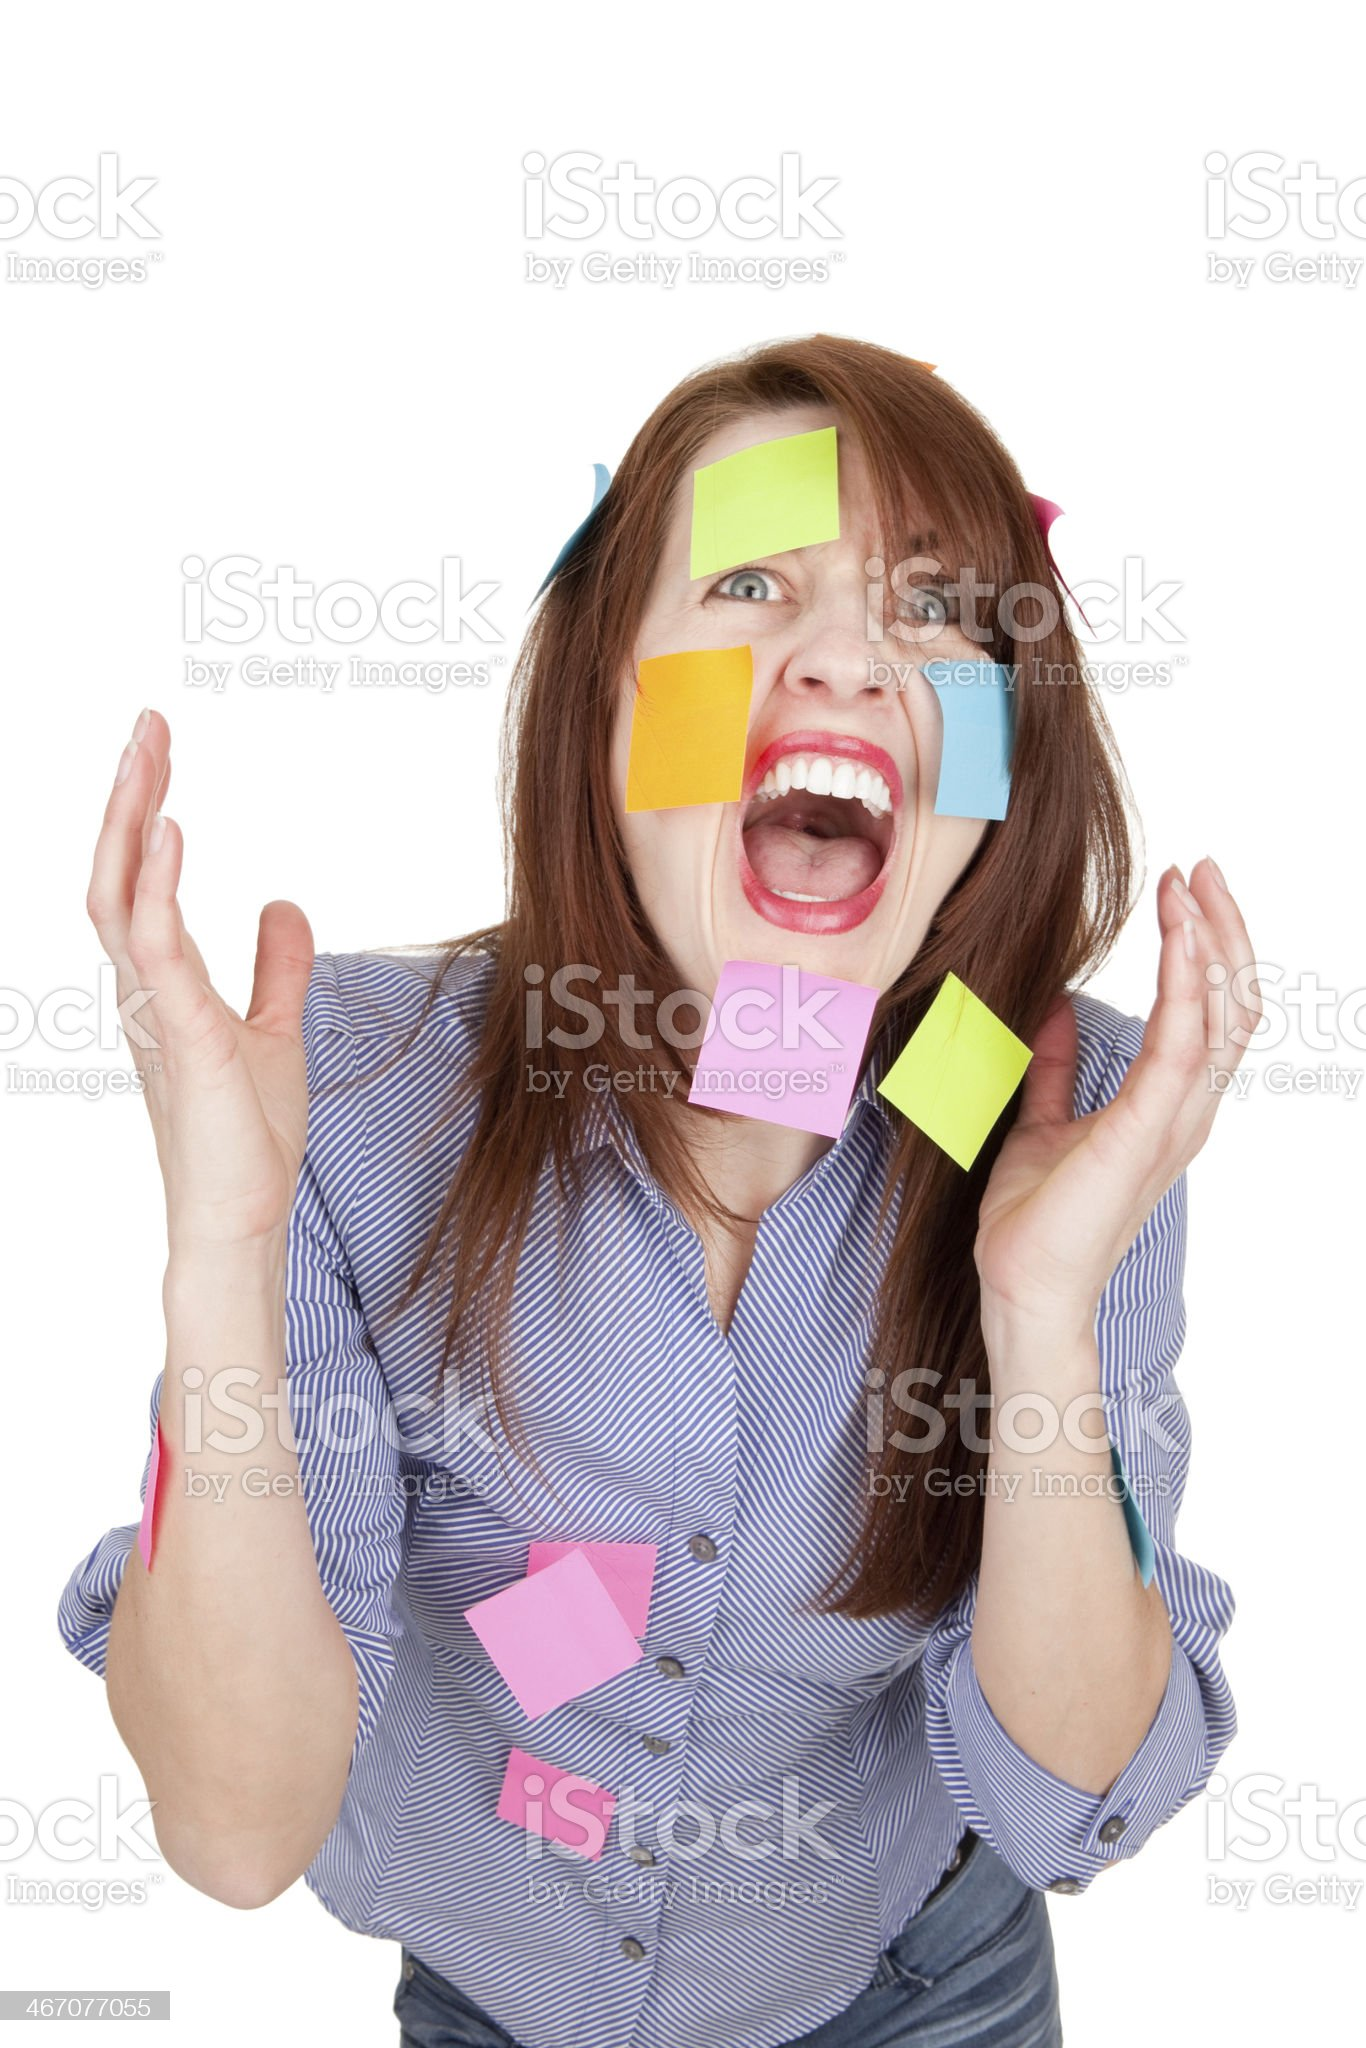 Stressed Screaming Woman With Sticky Notes All Over Her royalty-free stock photo